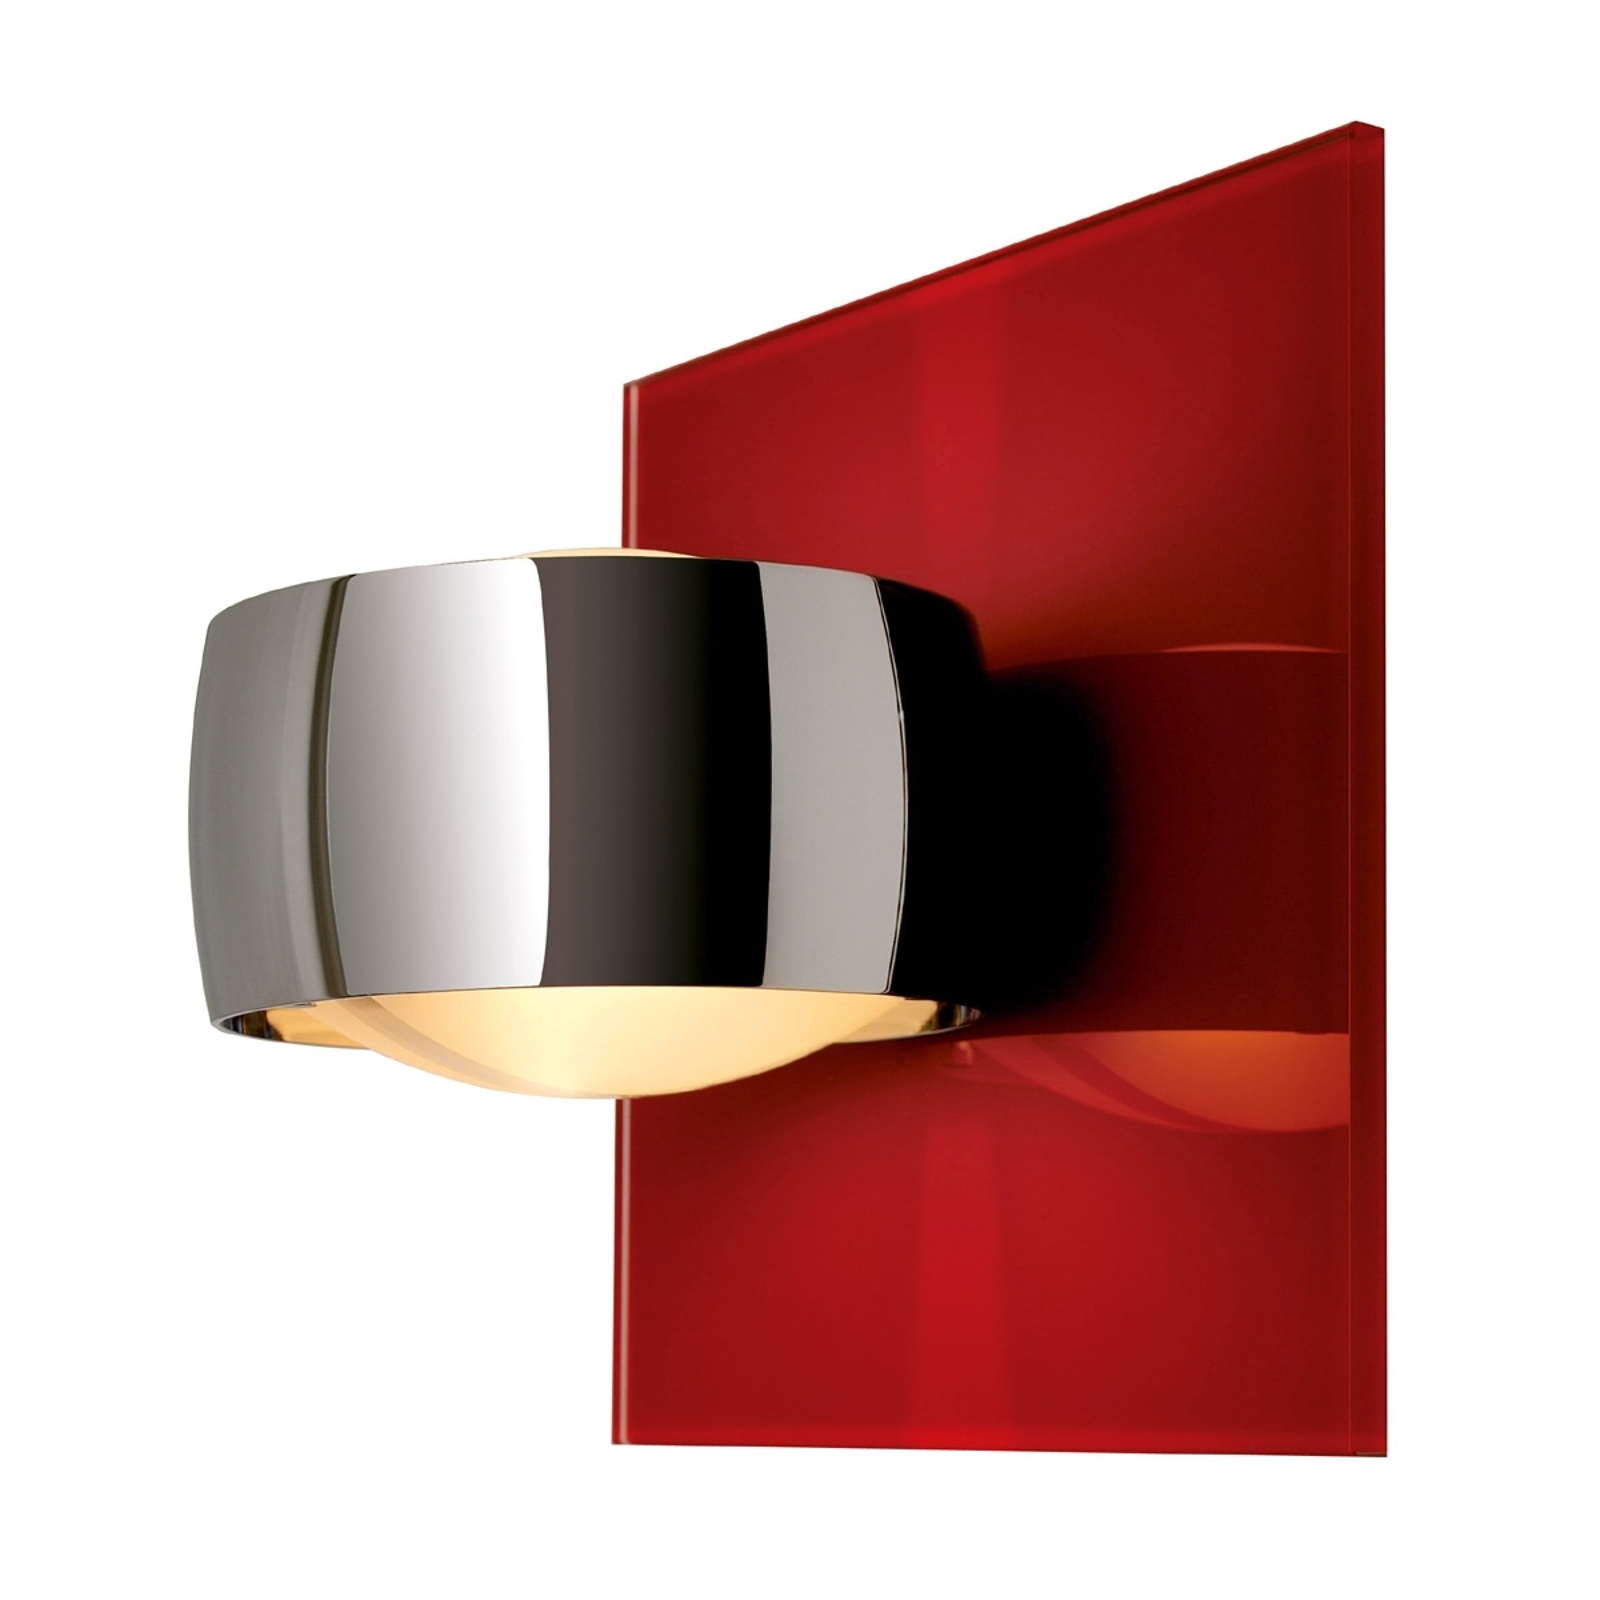 Decorativa applique GRACE UNLIMITED rosso/cromo